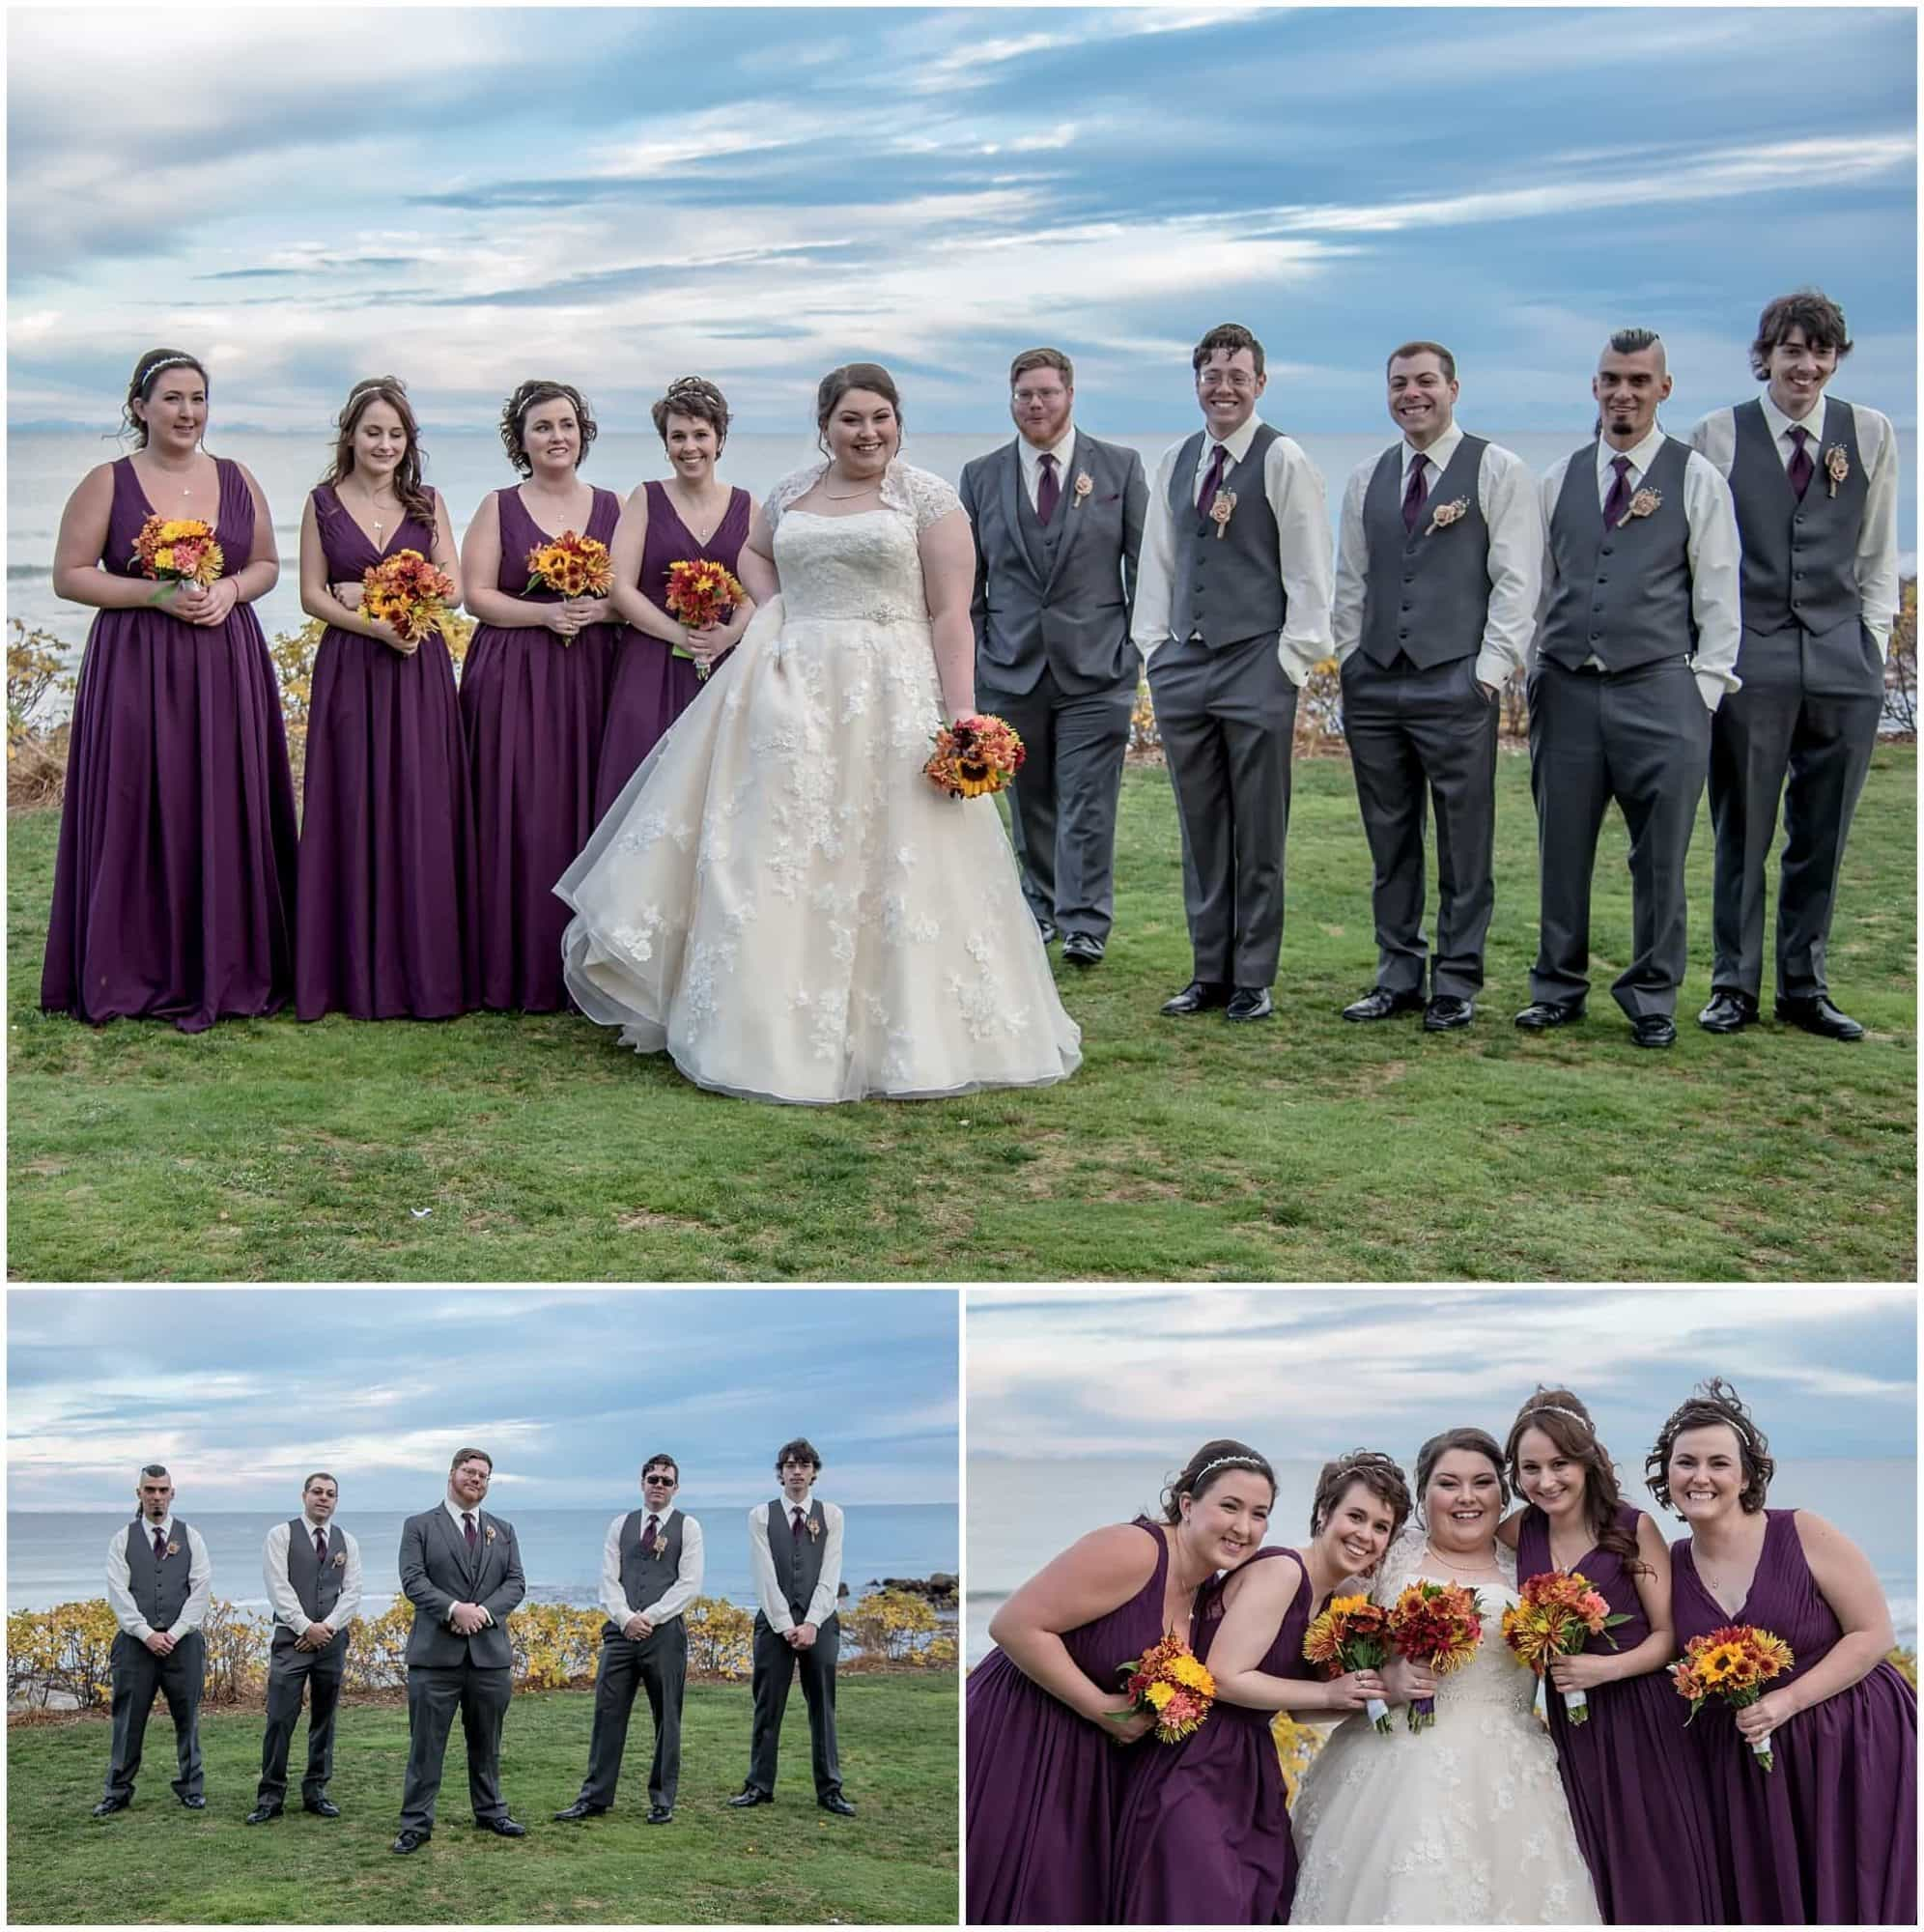 The wedding party photos with the bride and groom at the White Point Beach Resort in Nova Scotia.